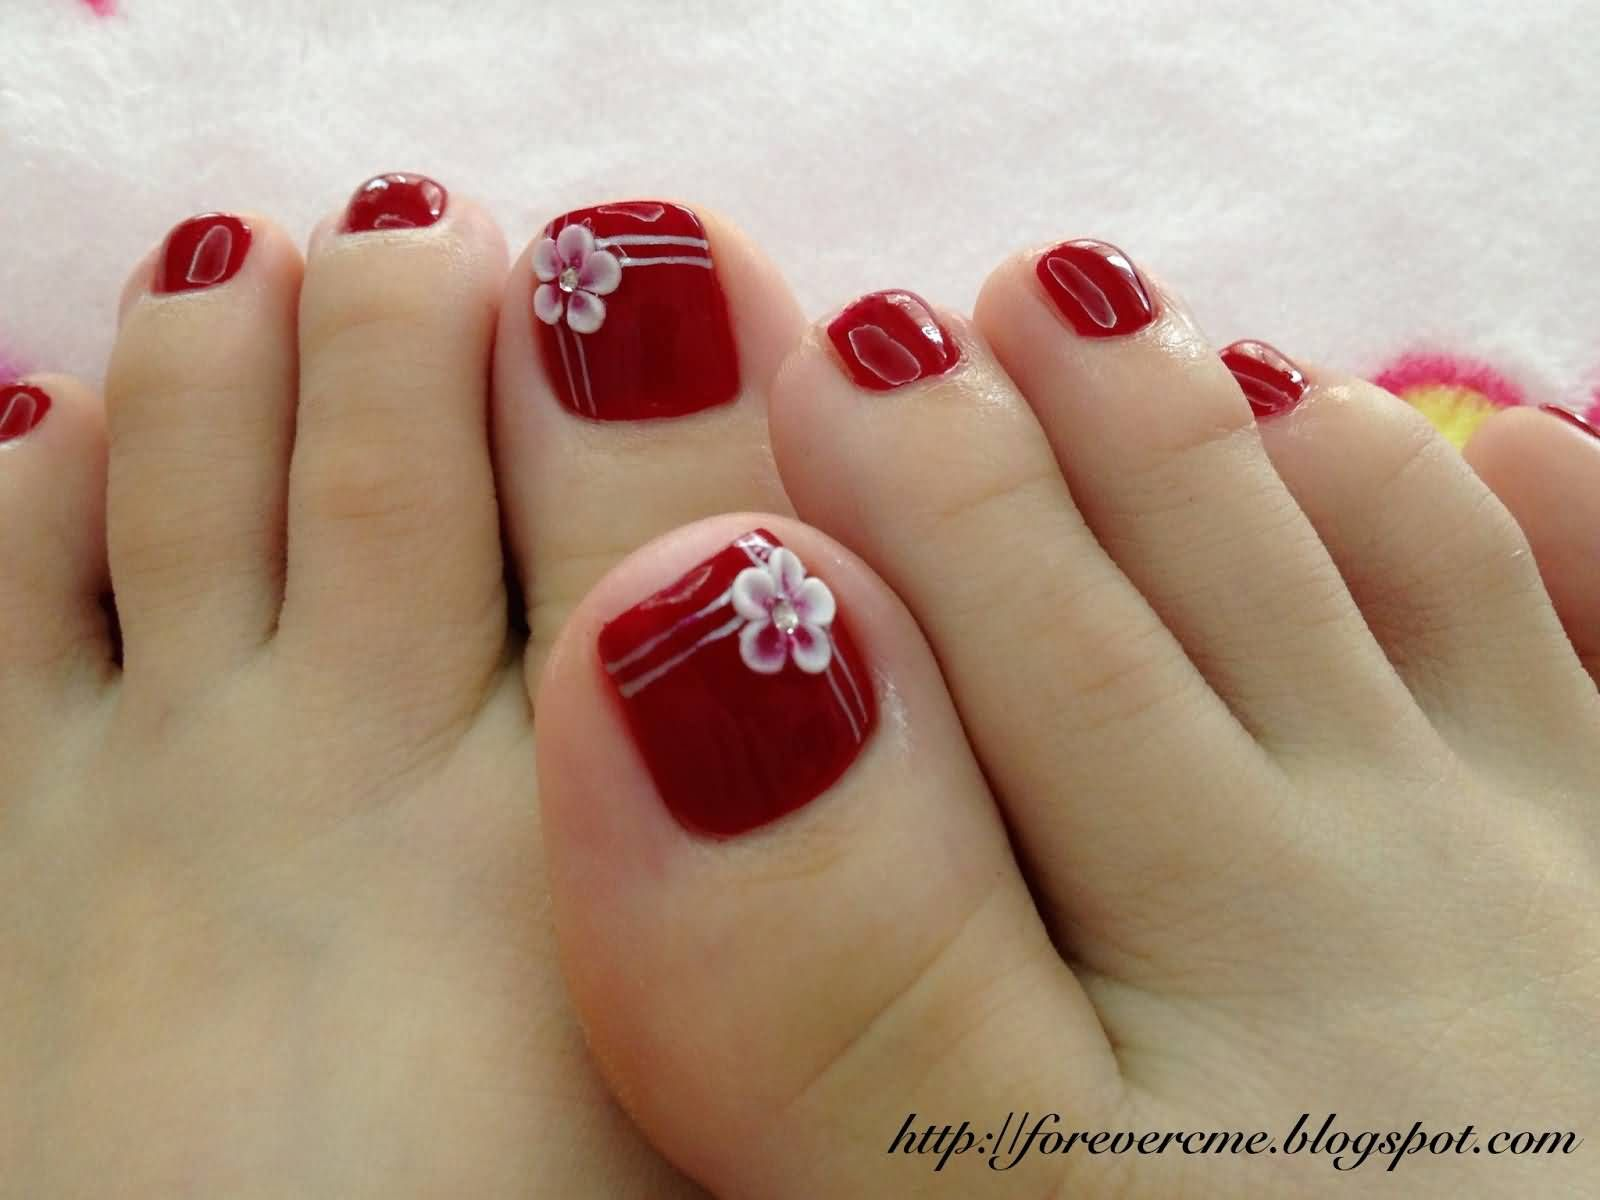 White color nail art - Beautiful Red Toe Nails With White 3d Flower Nail Art